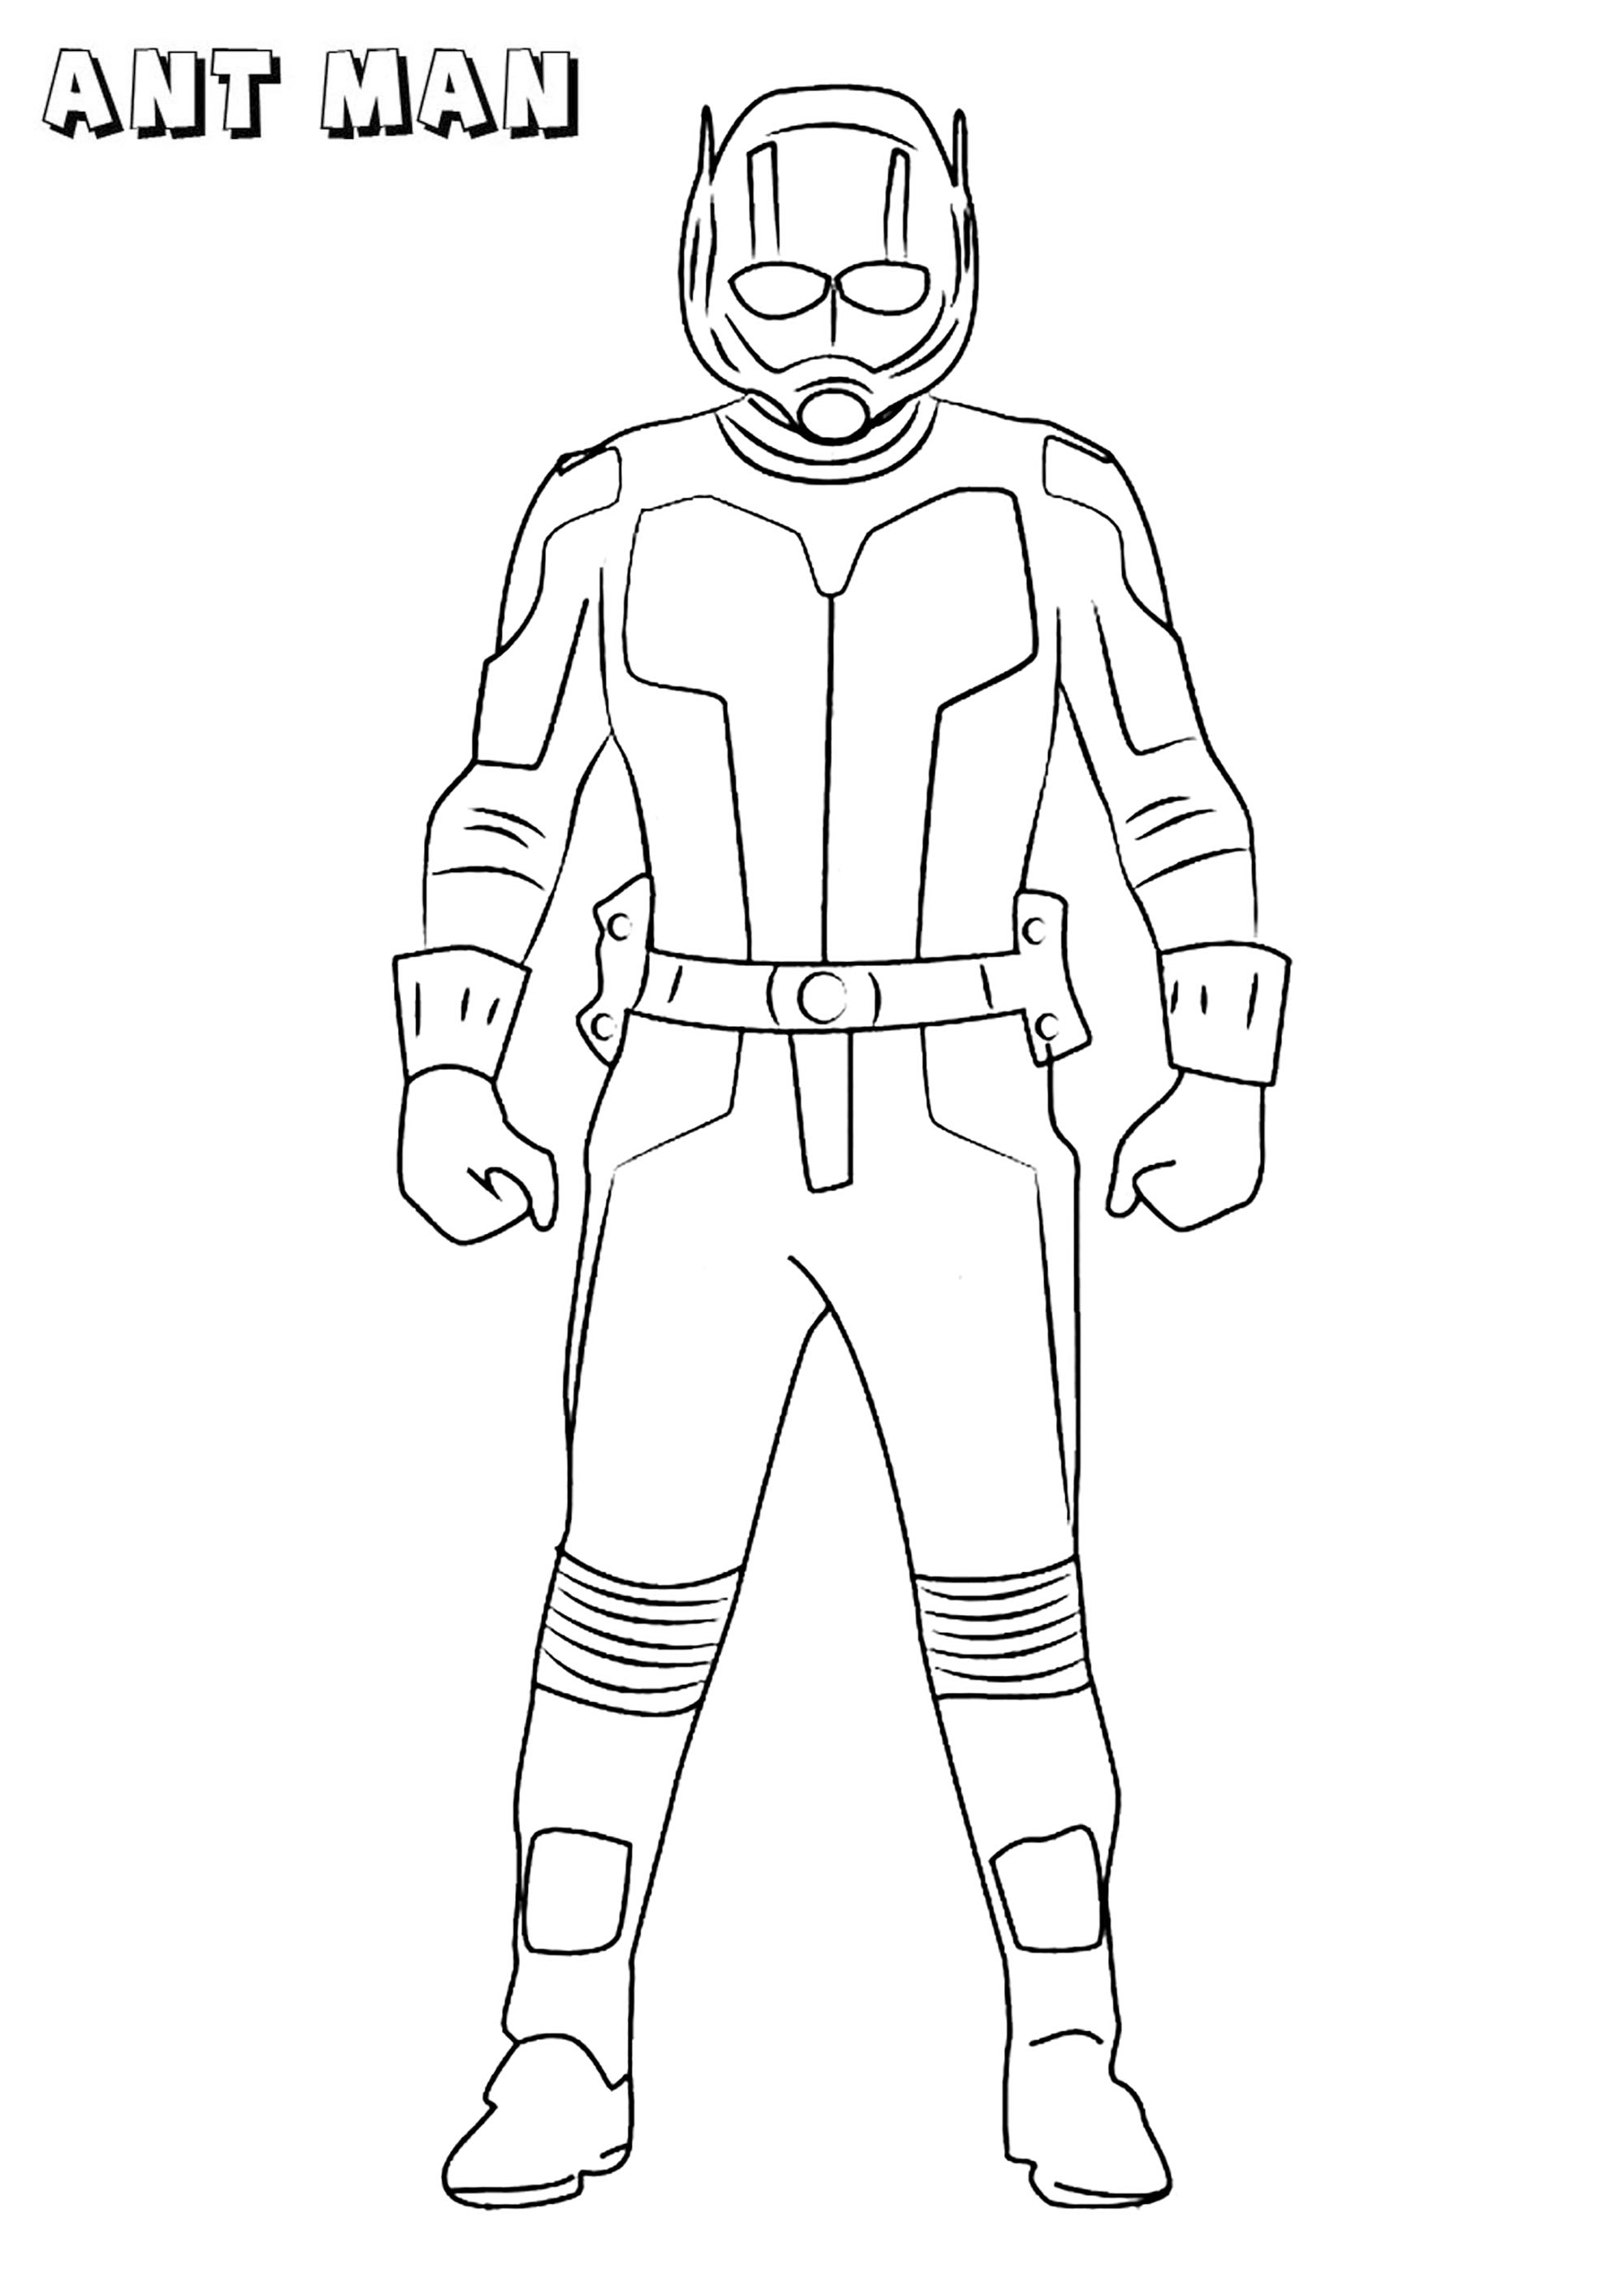 Ant Man Coloring Pages - Best Coloring Pages For Kids